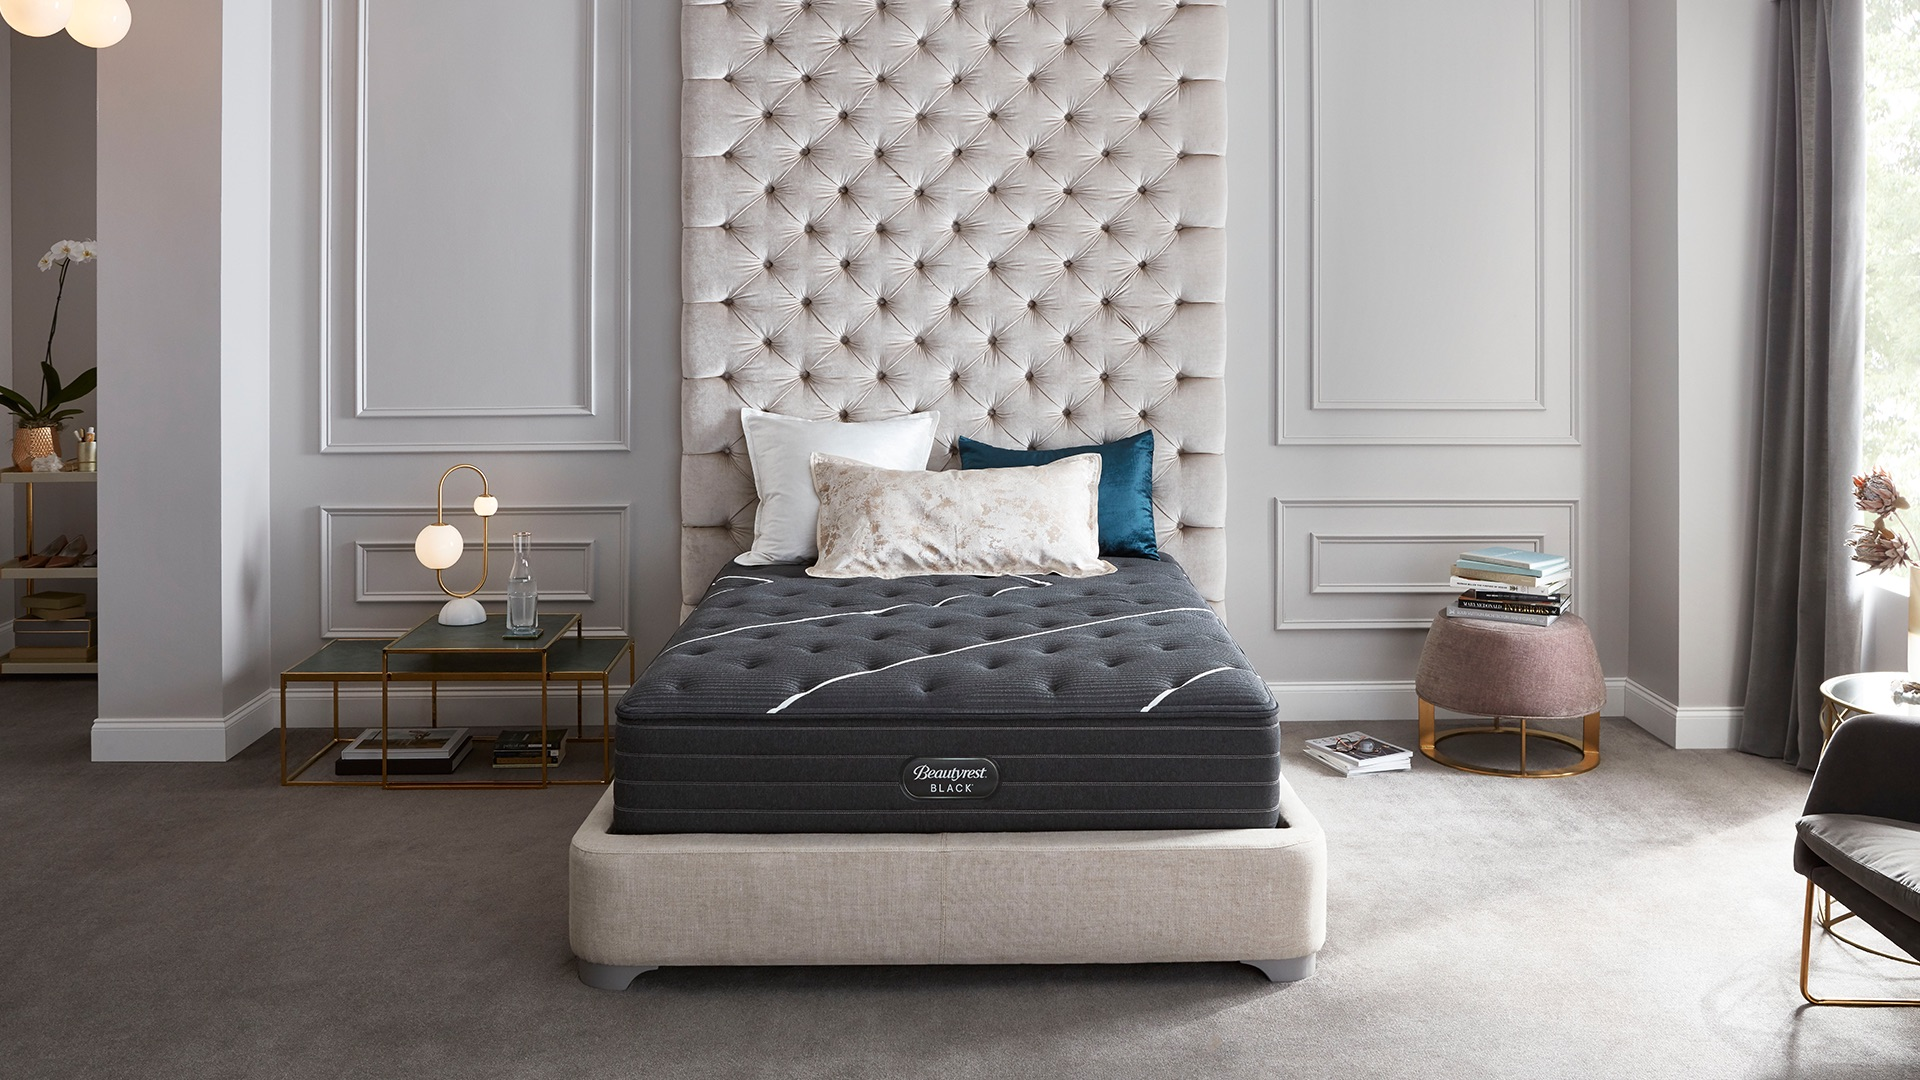 Beauty Rest Mattress Reviews and Buying Guide by www.snoremagazine.com